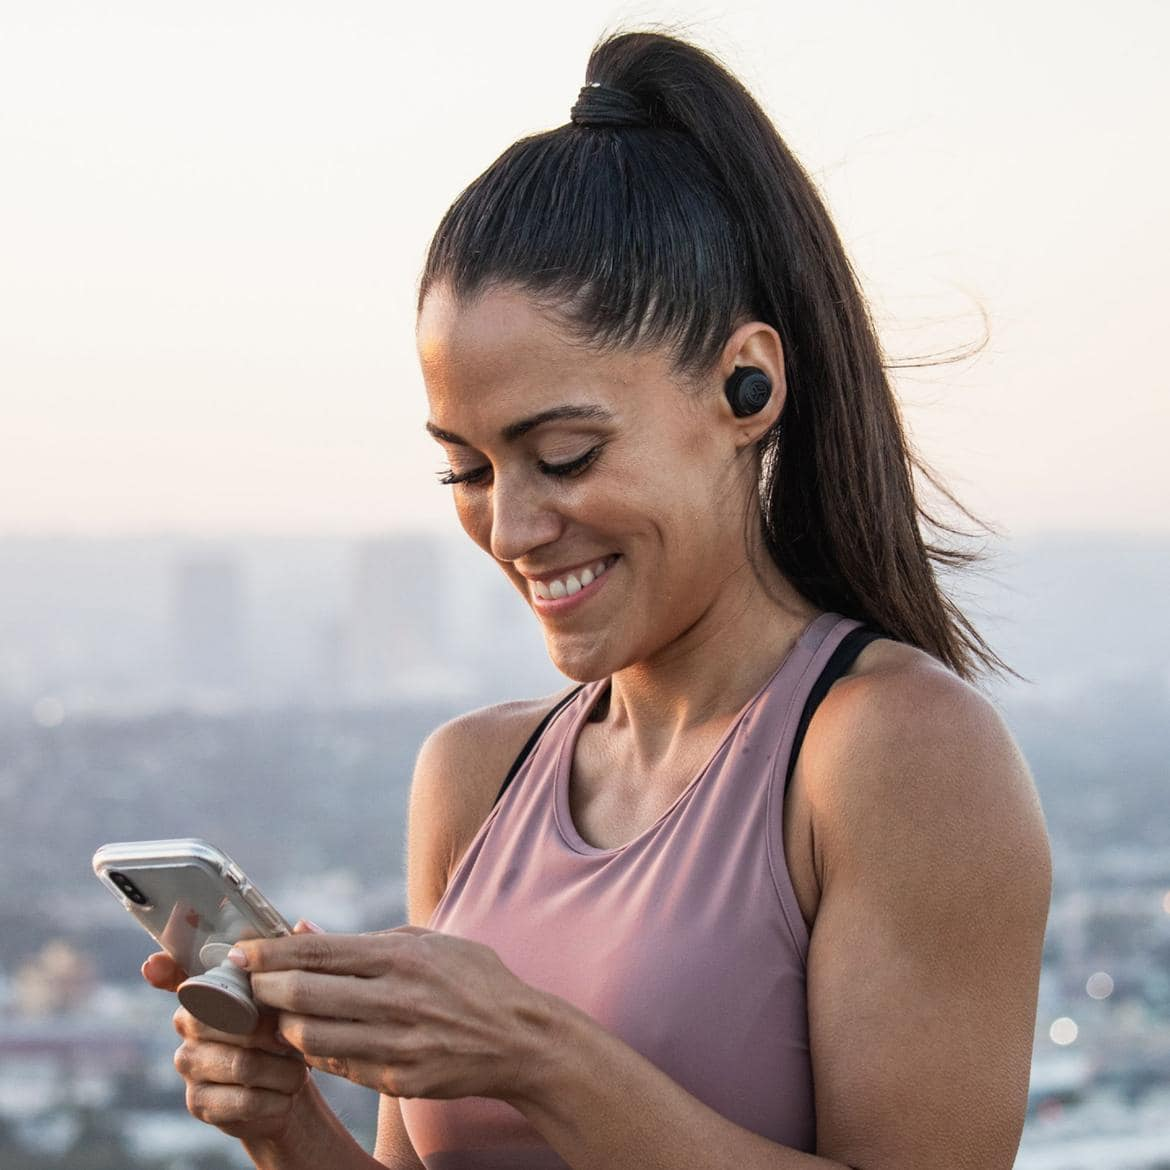 JLab true wireless earbuds under $100 worn by woman holding smartphone